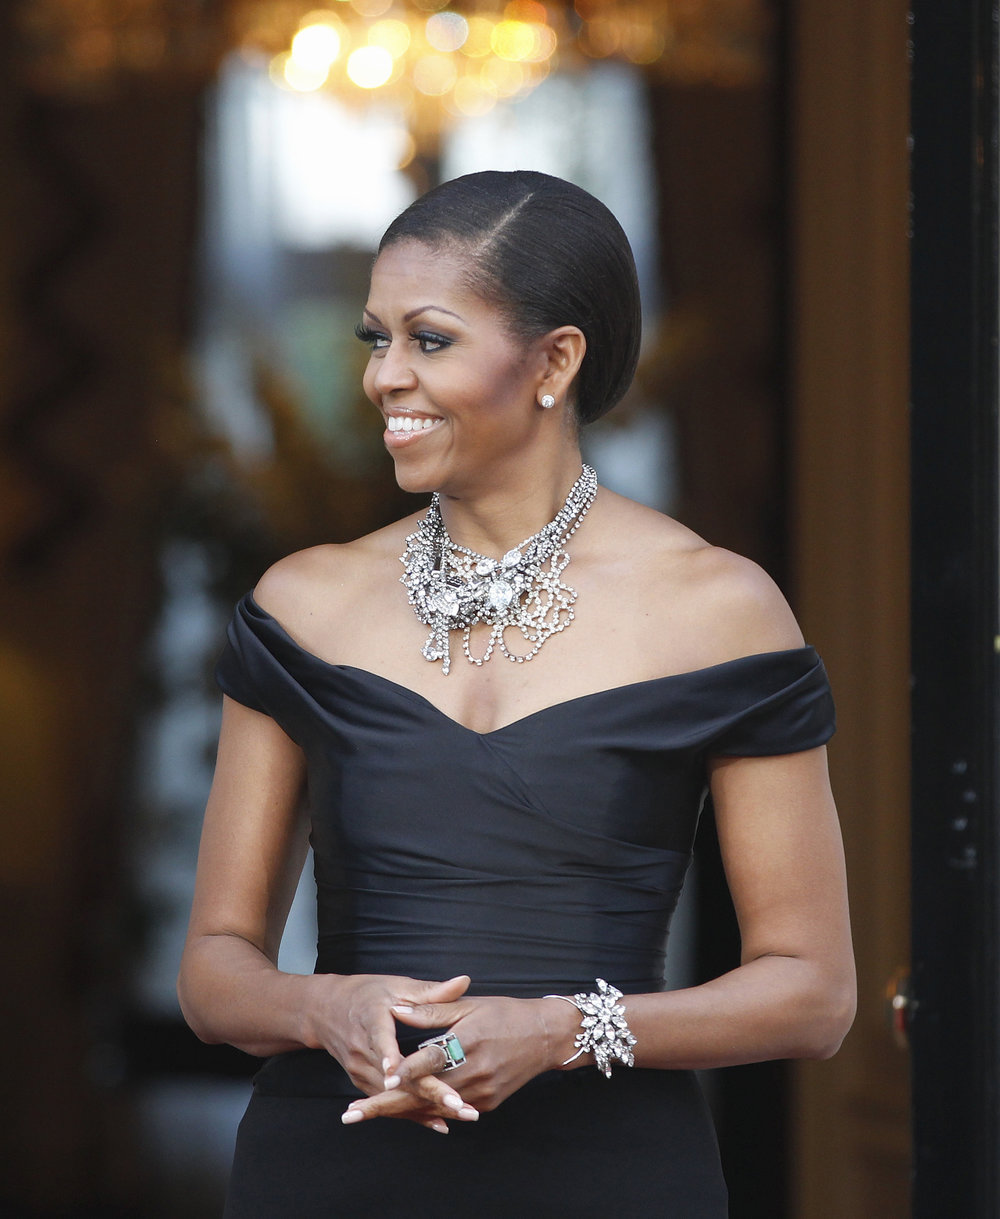 YEWN and Michelle Obama -